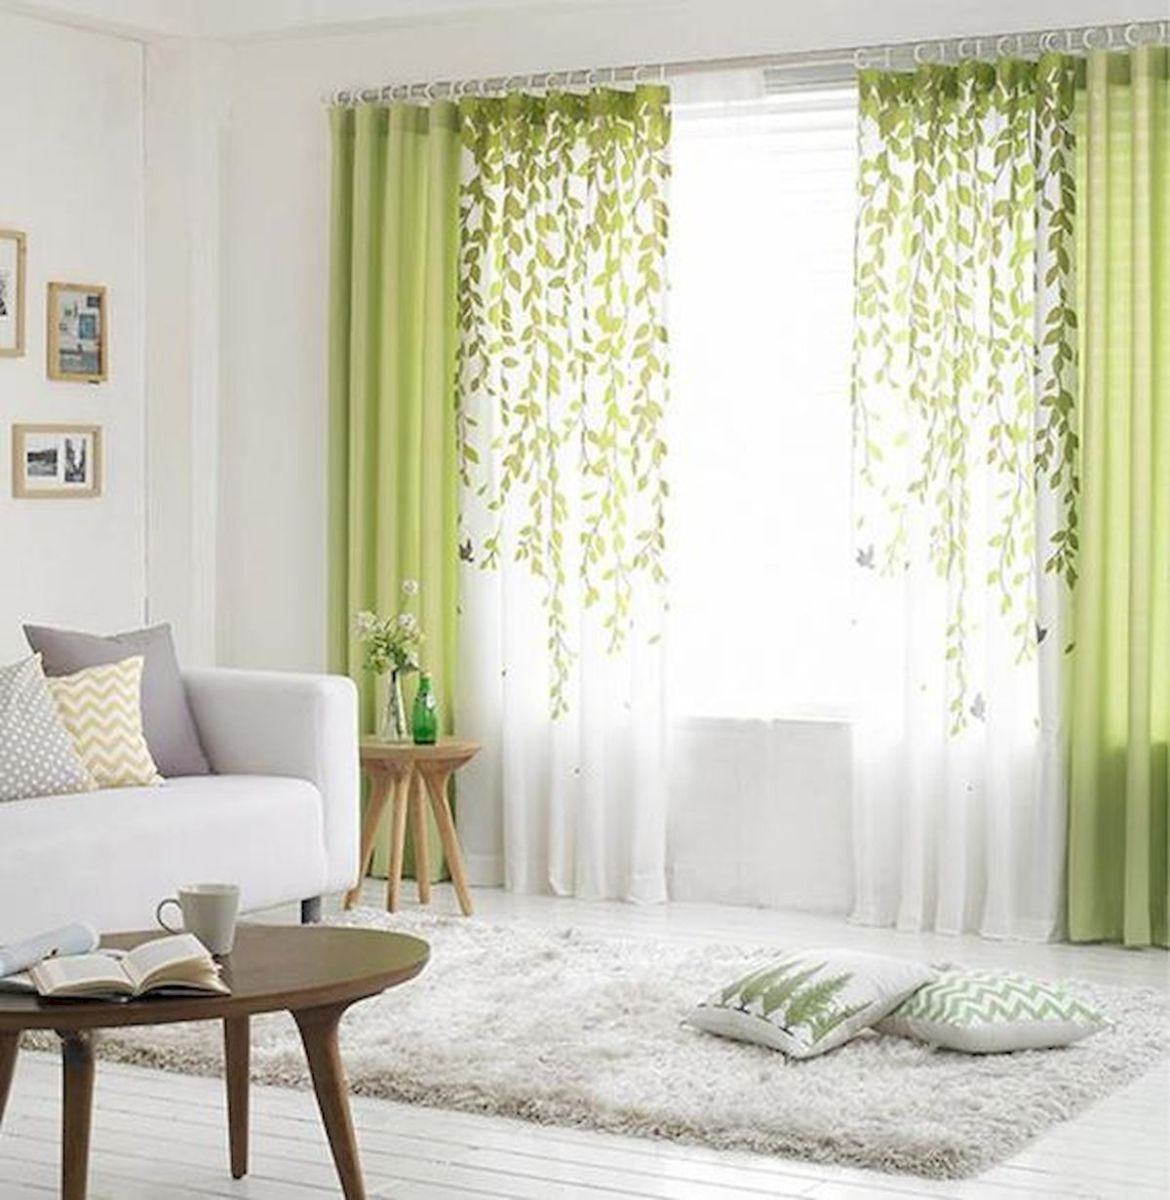 65 Adorable Window Curtains Design Ideas And Decor (2)